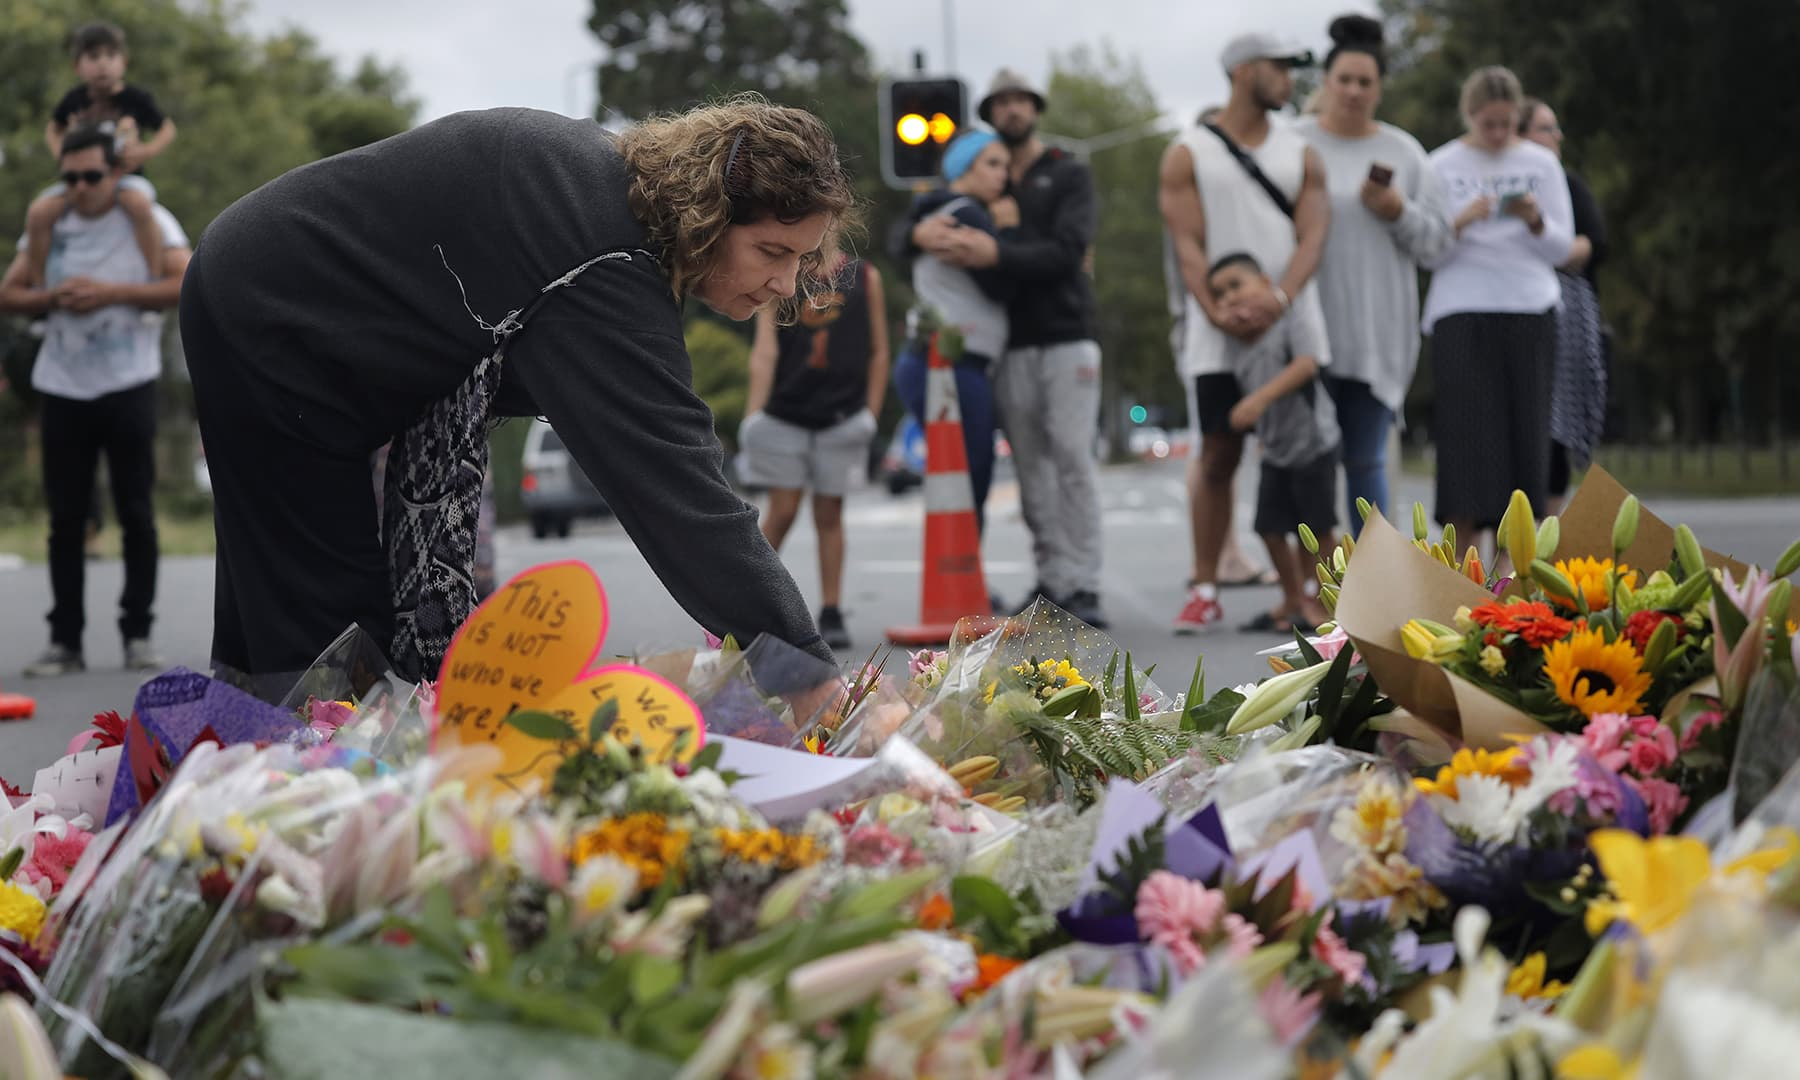 A woman paying her respects to the victims of the attack at a makeshift memorial near the Masjid Al Noor mosque, Saturday, March 16, 2019, Christchurch, New Zealand. —AP